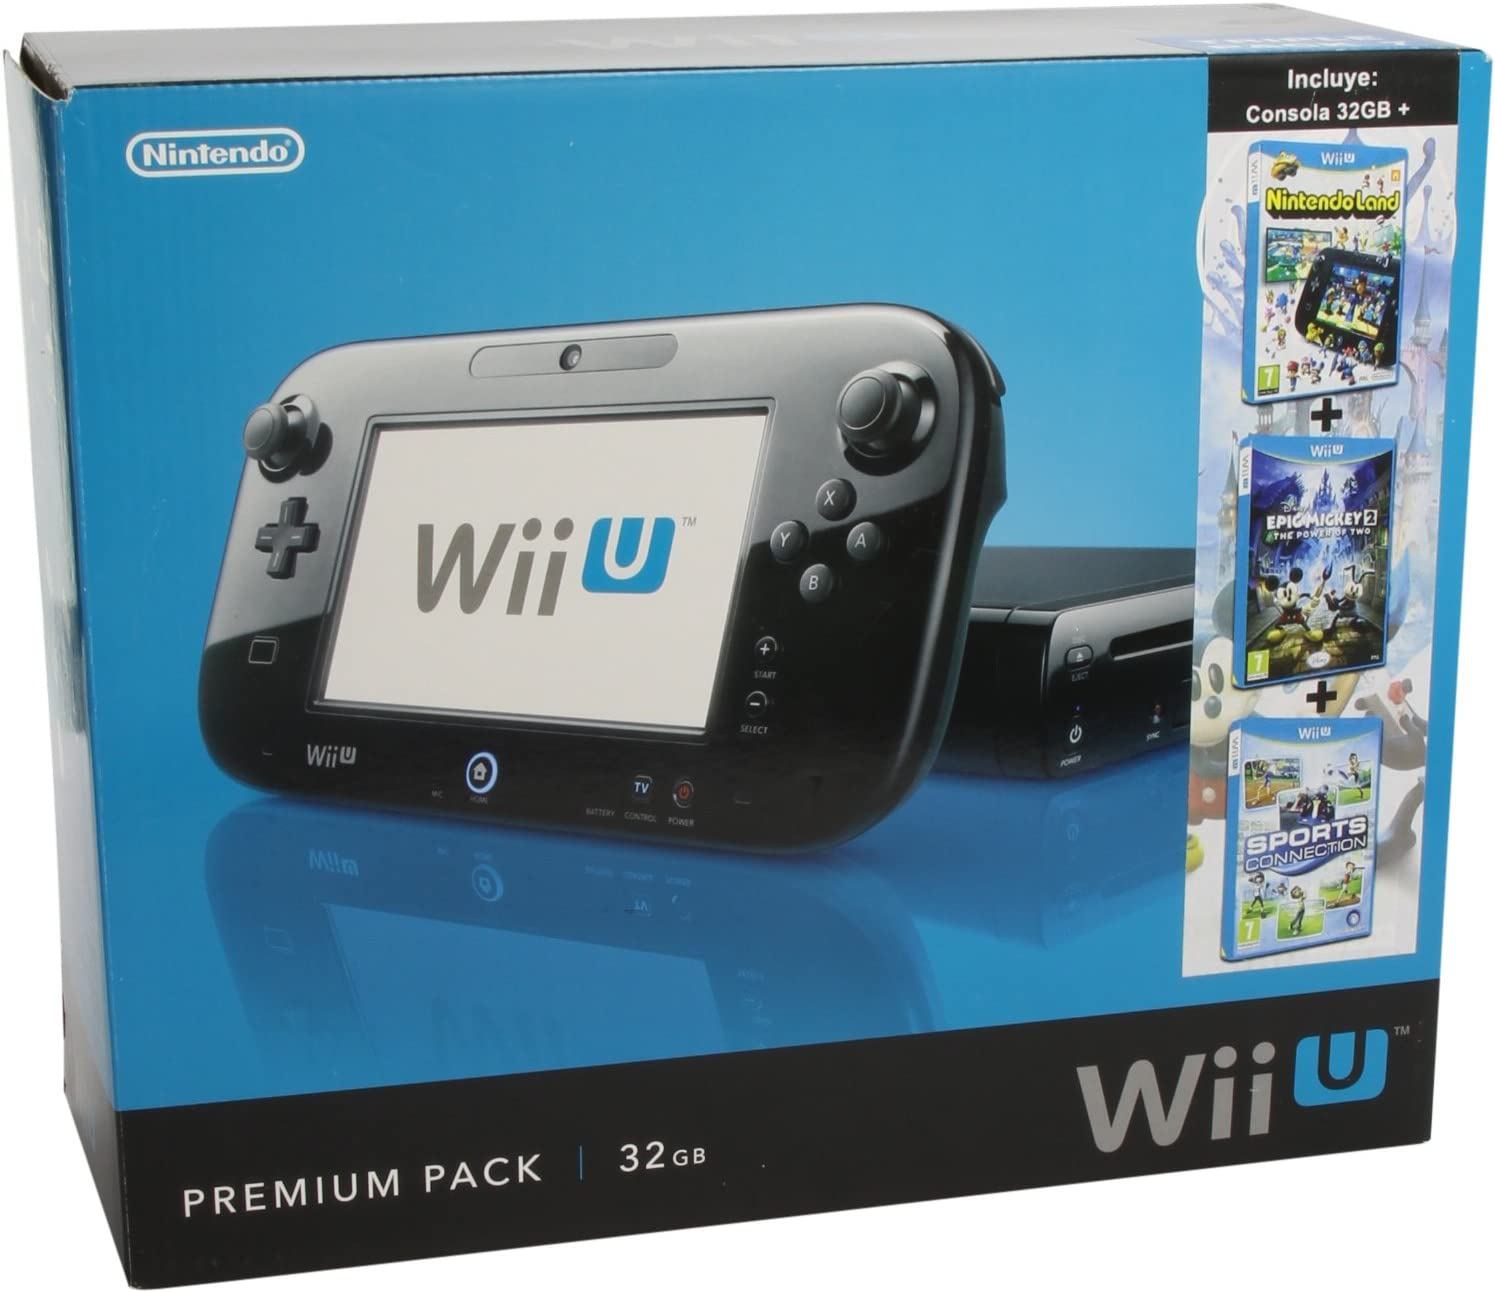 Nintendo Wii U - Triple Pack 7 Consola 32 GB Premium, Color Negro: Amazon.es: Videojuegos